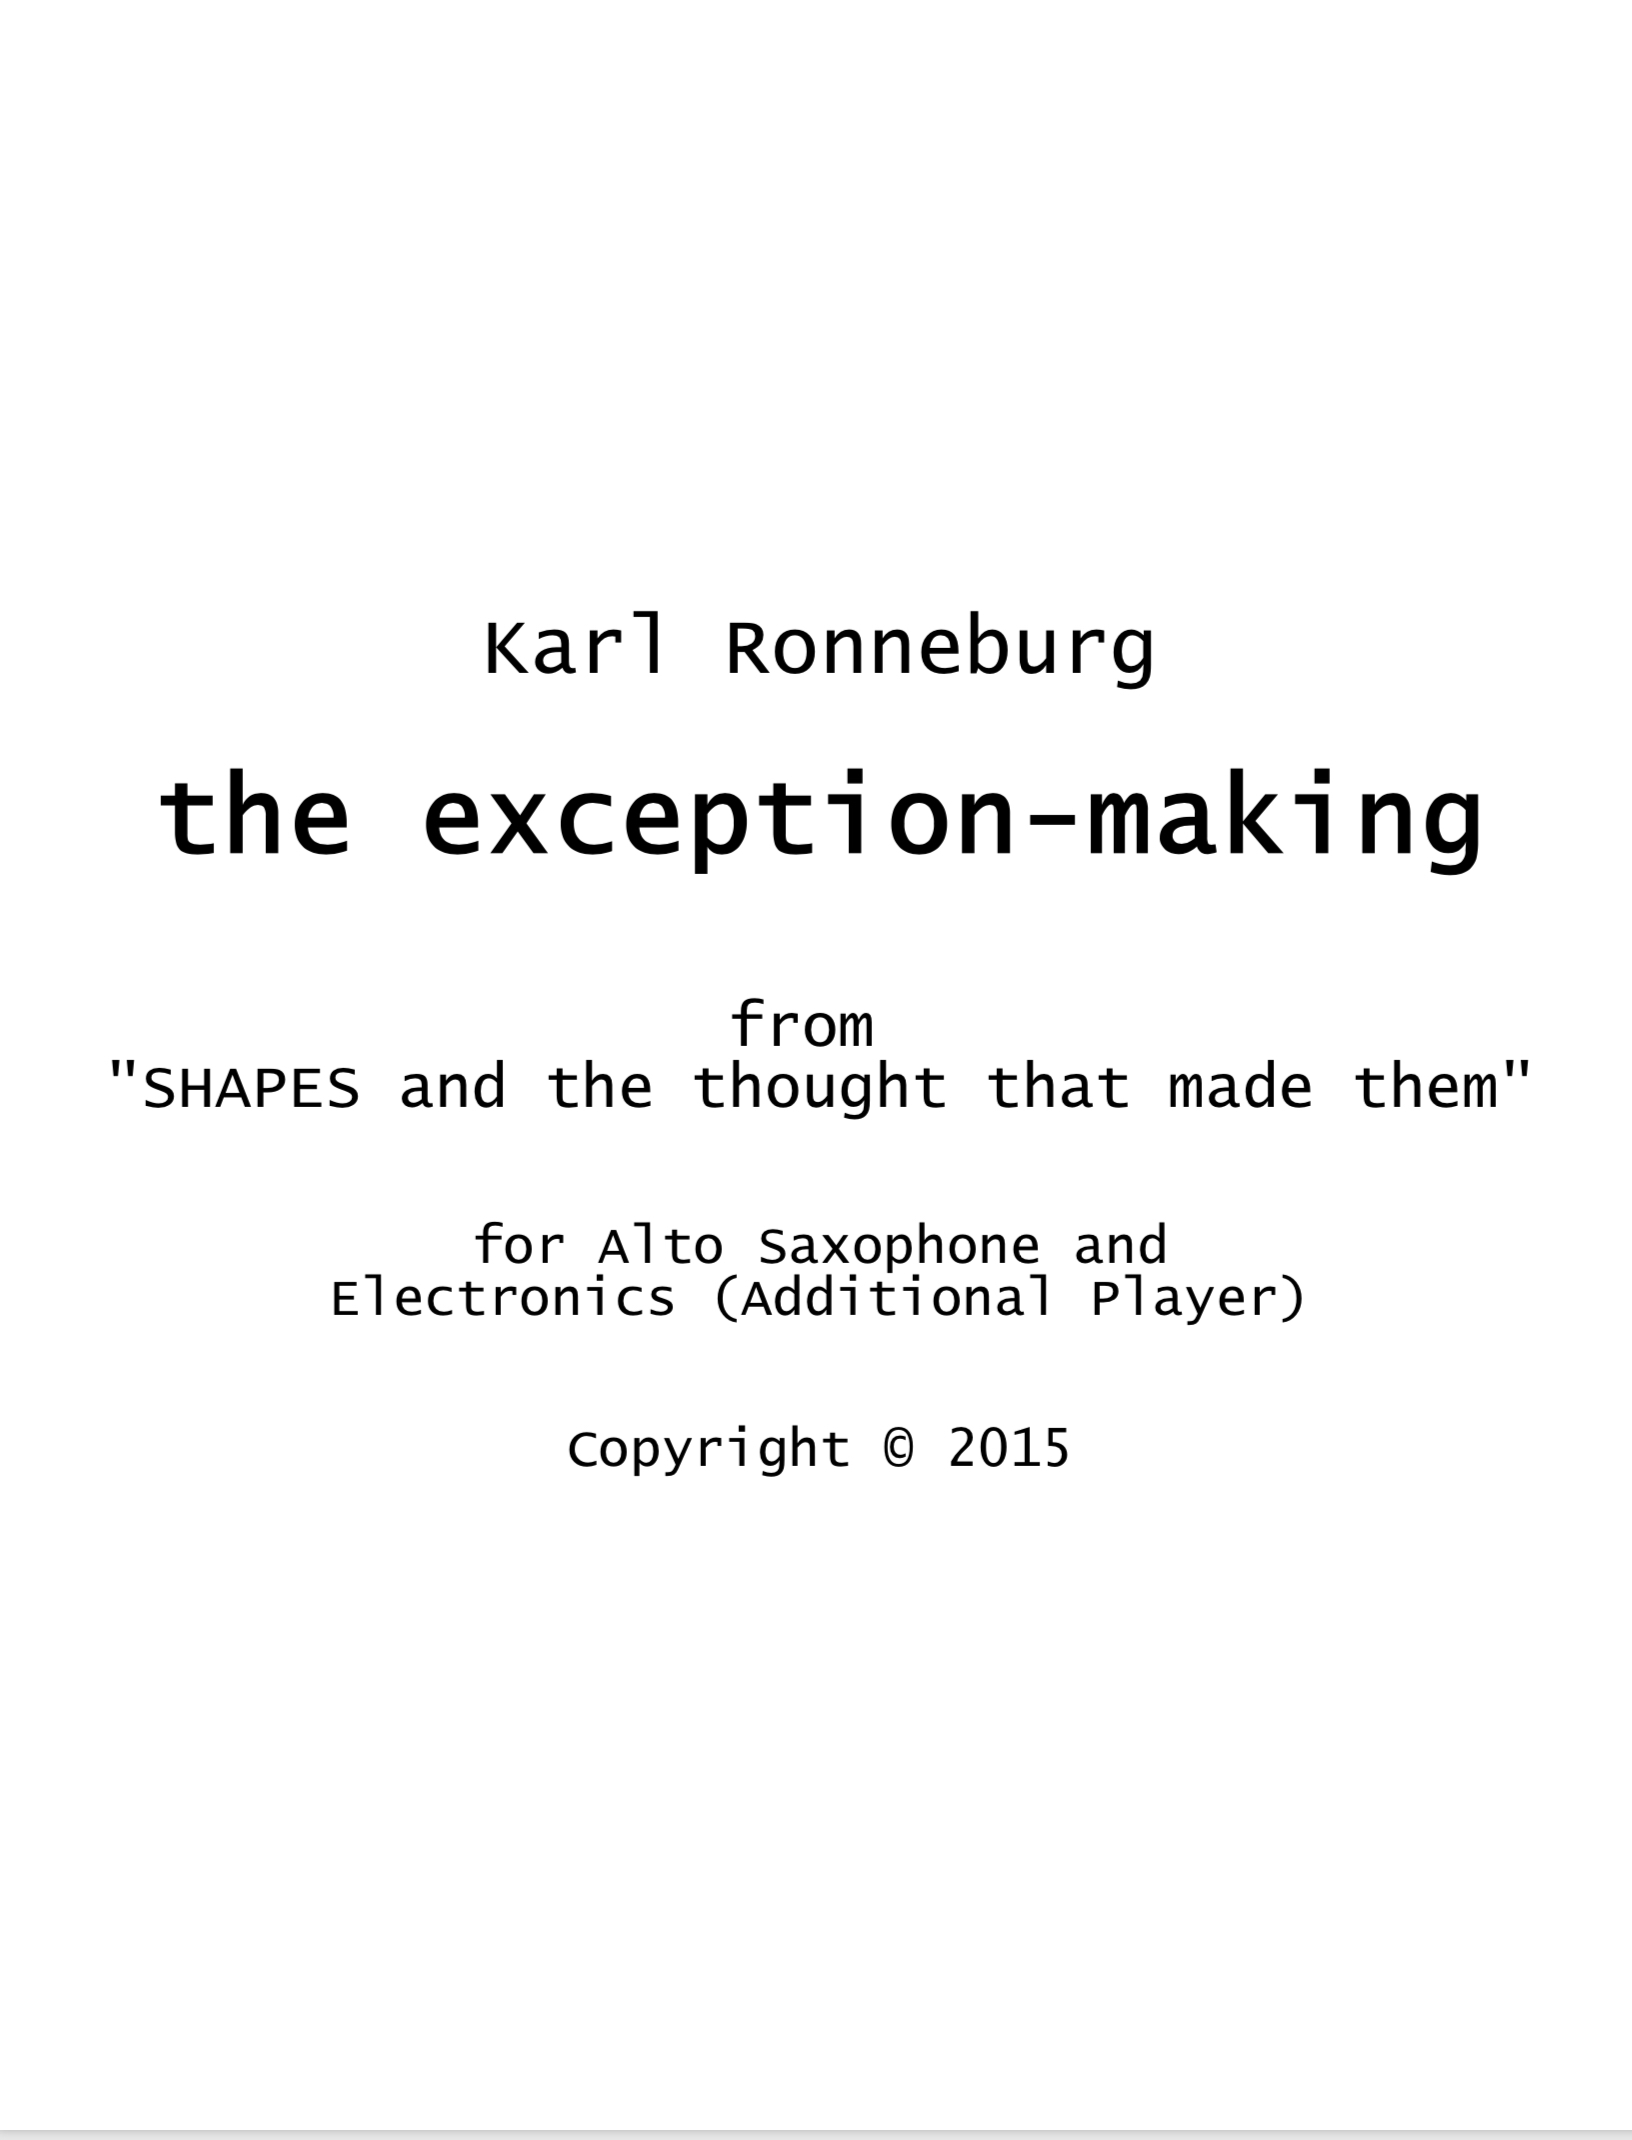 The Exception-making  by Karl Ronneburg